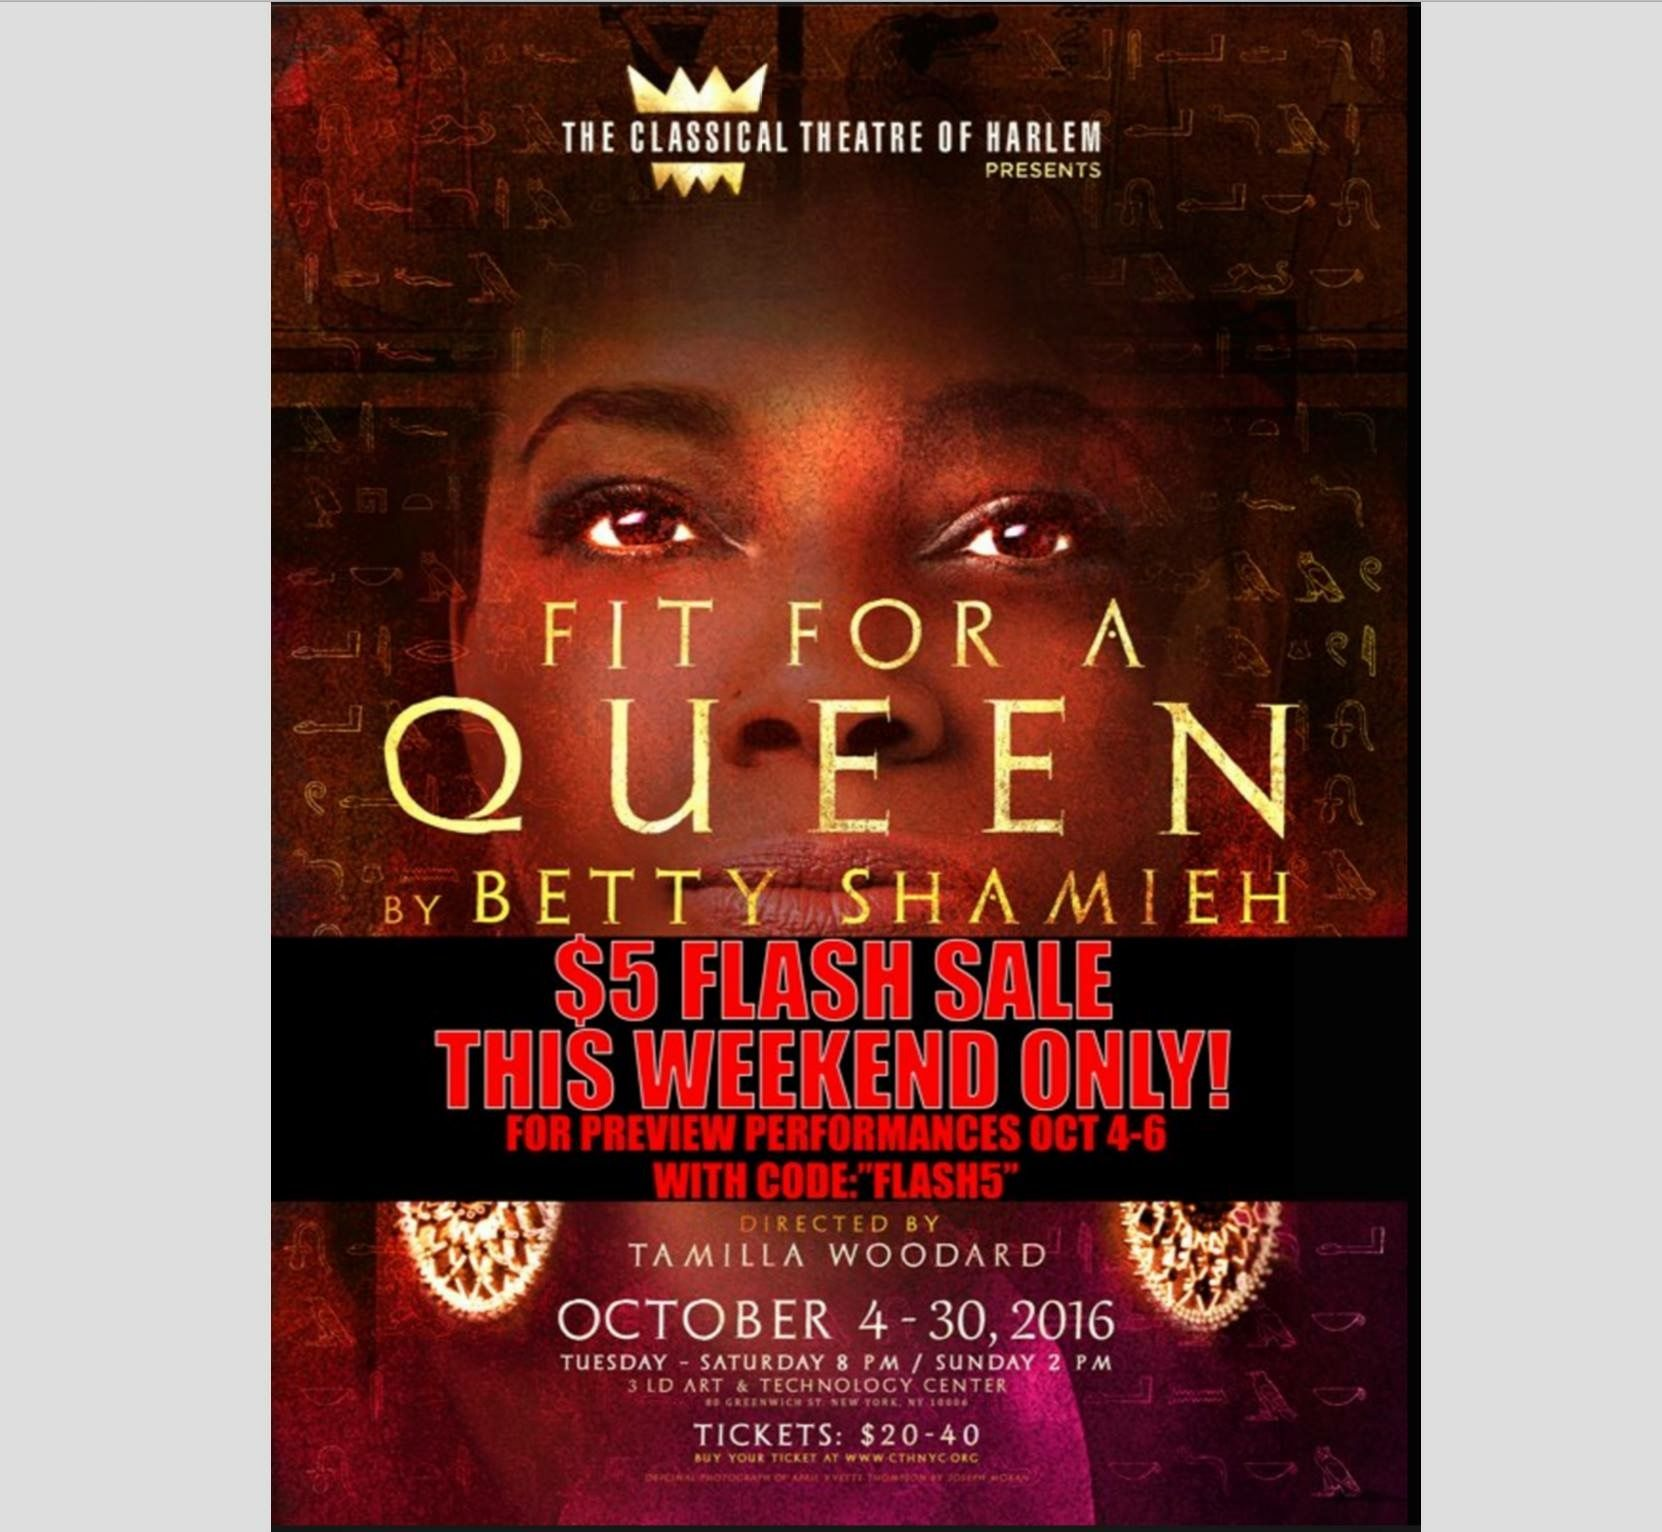 """FLASH SALE! This Weekend Only!  #CTHQueen $5 Preview Tickets (Oct 4-6) to CTH's Fit For A Queen by Betty Shamieh, playing at 3LD Art & Technology Center + 3-Legged Dog Media & Theater.  USE Discount Code: """"FLASH5"""" Tickets available now through 10/31!  www.cthnyc.org"""